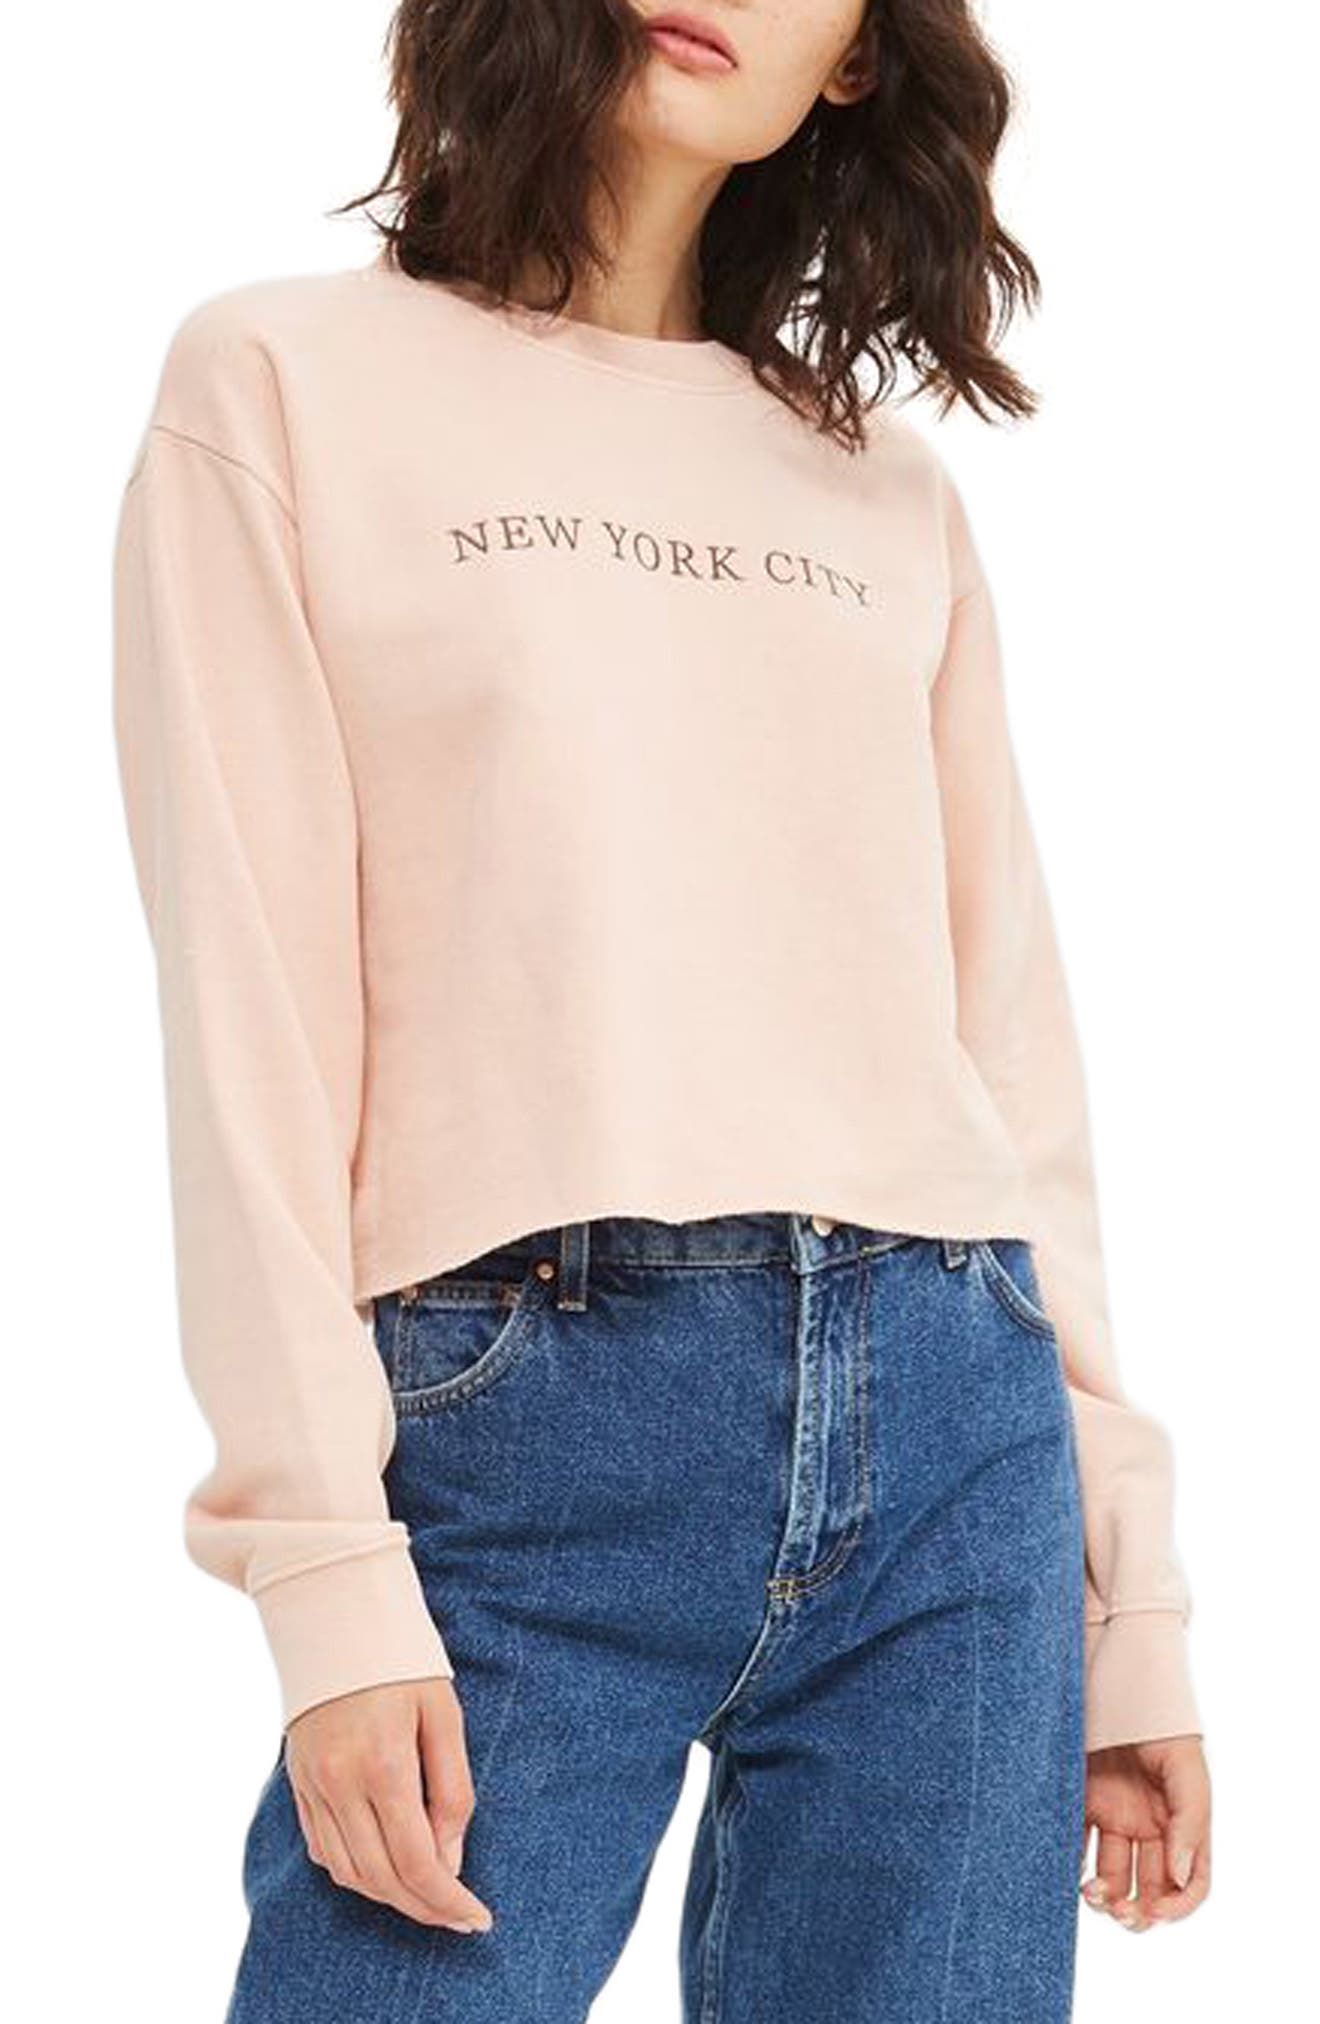 New York City Embroidered Sweatshirt,                             Main thumbnail 1, color,                             650